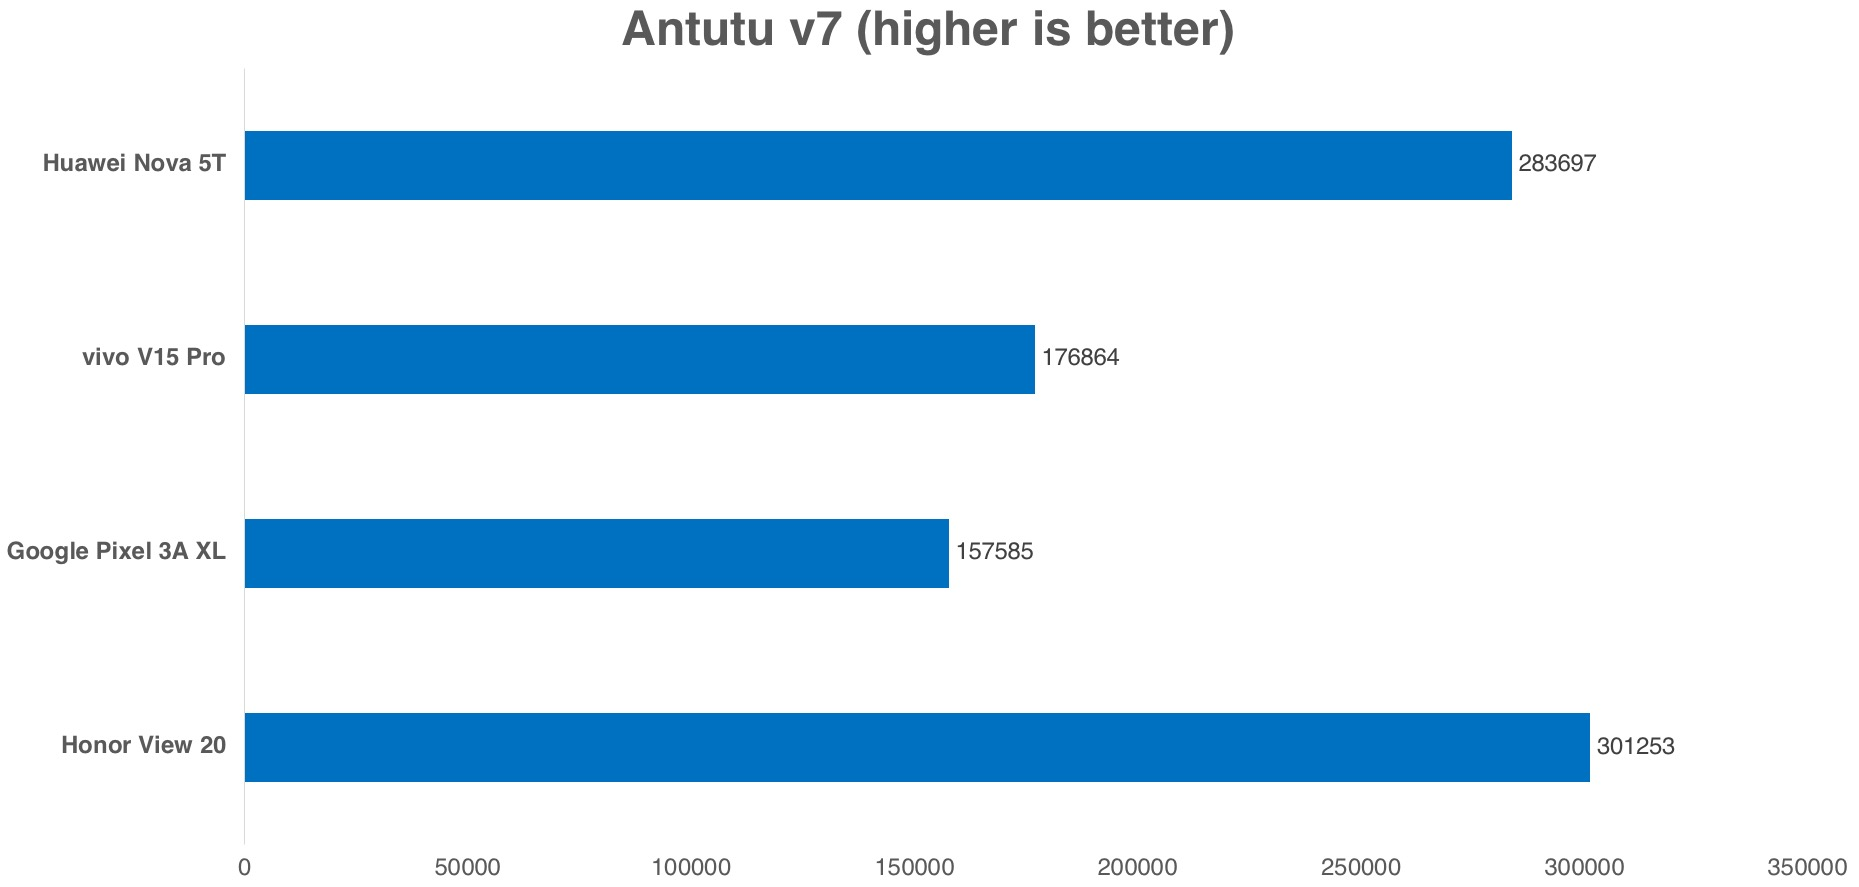 ...this time, the Nova 5T eked out a win over the two Snapdragon 7xx devices, but still could not beat its Kirin 980 stablemate.